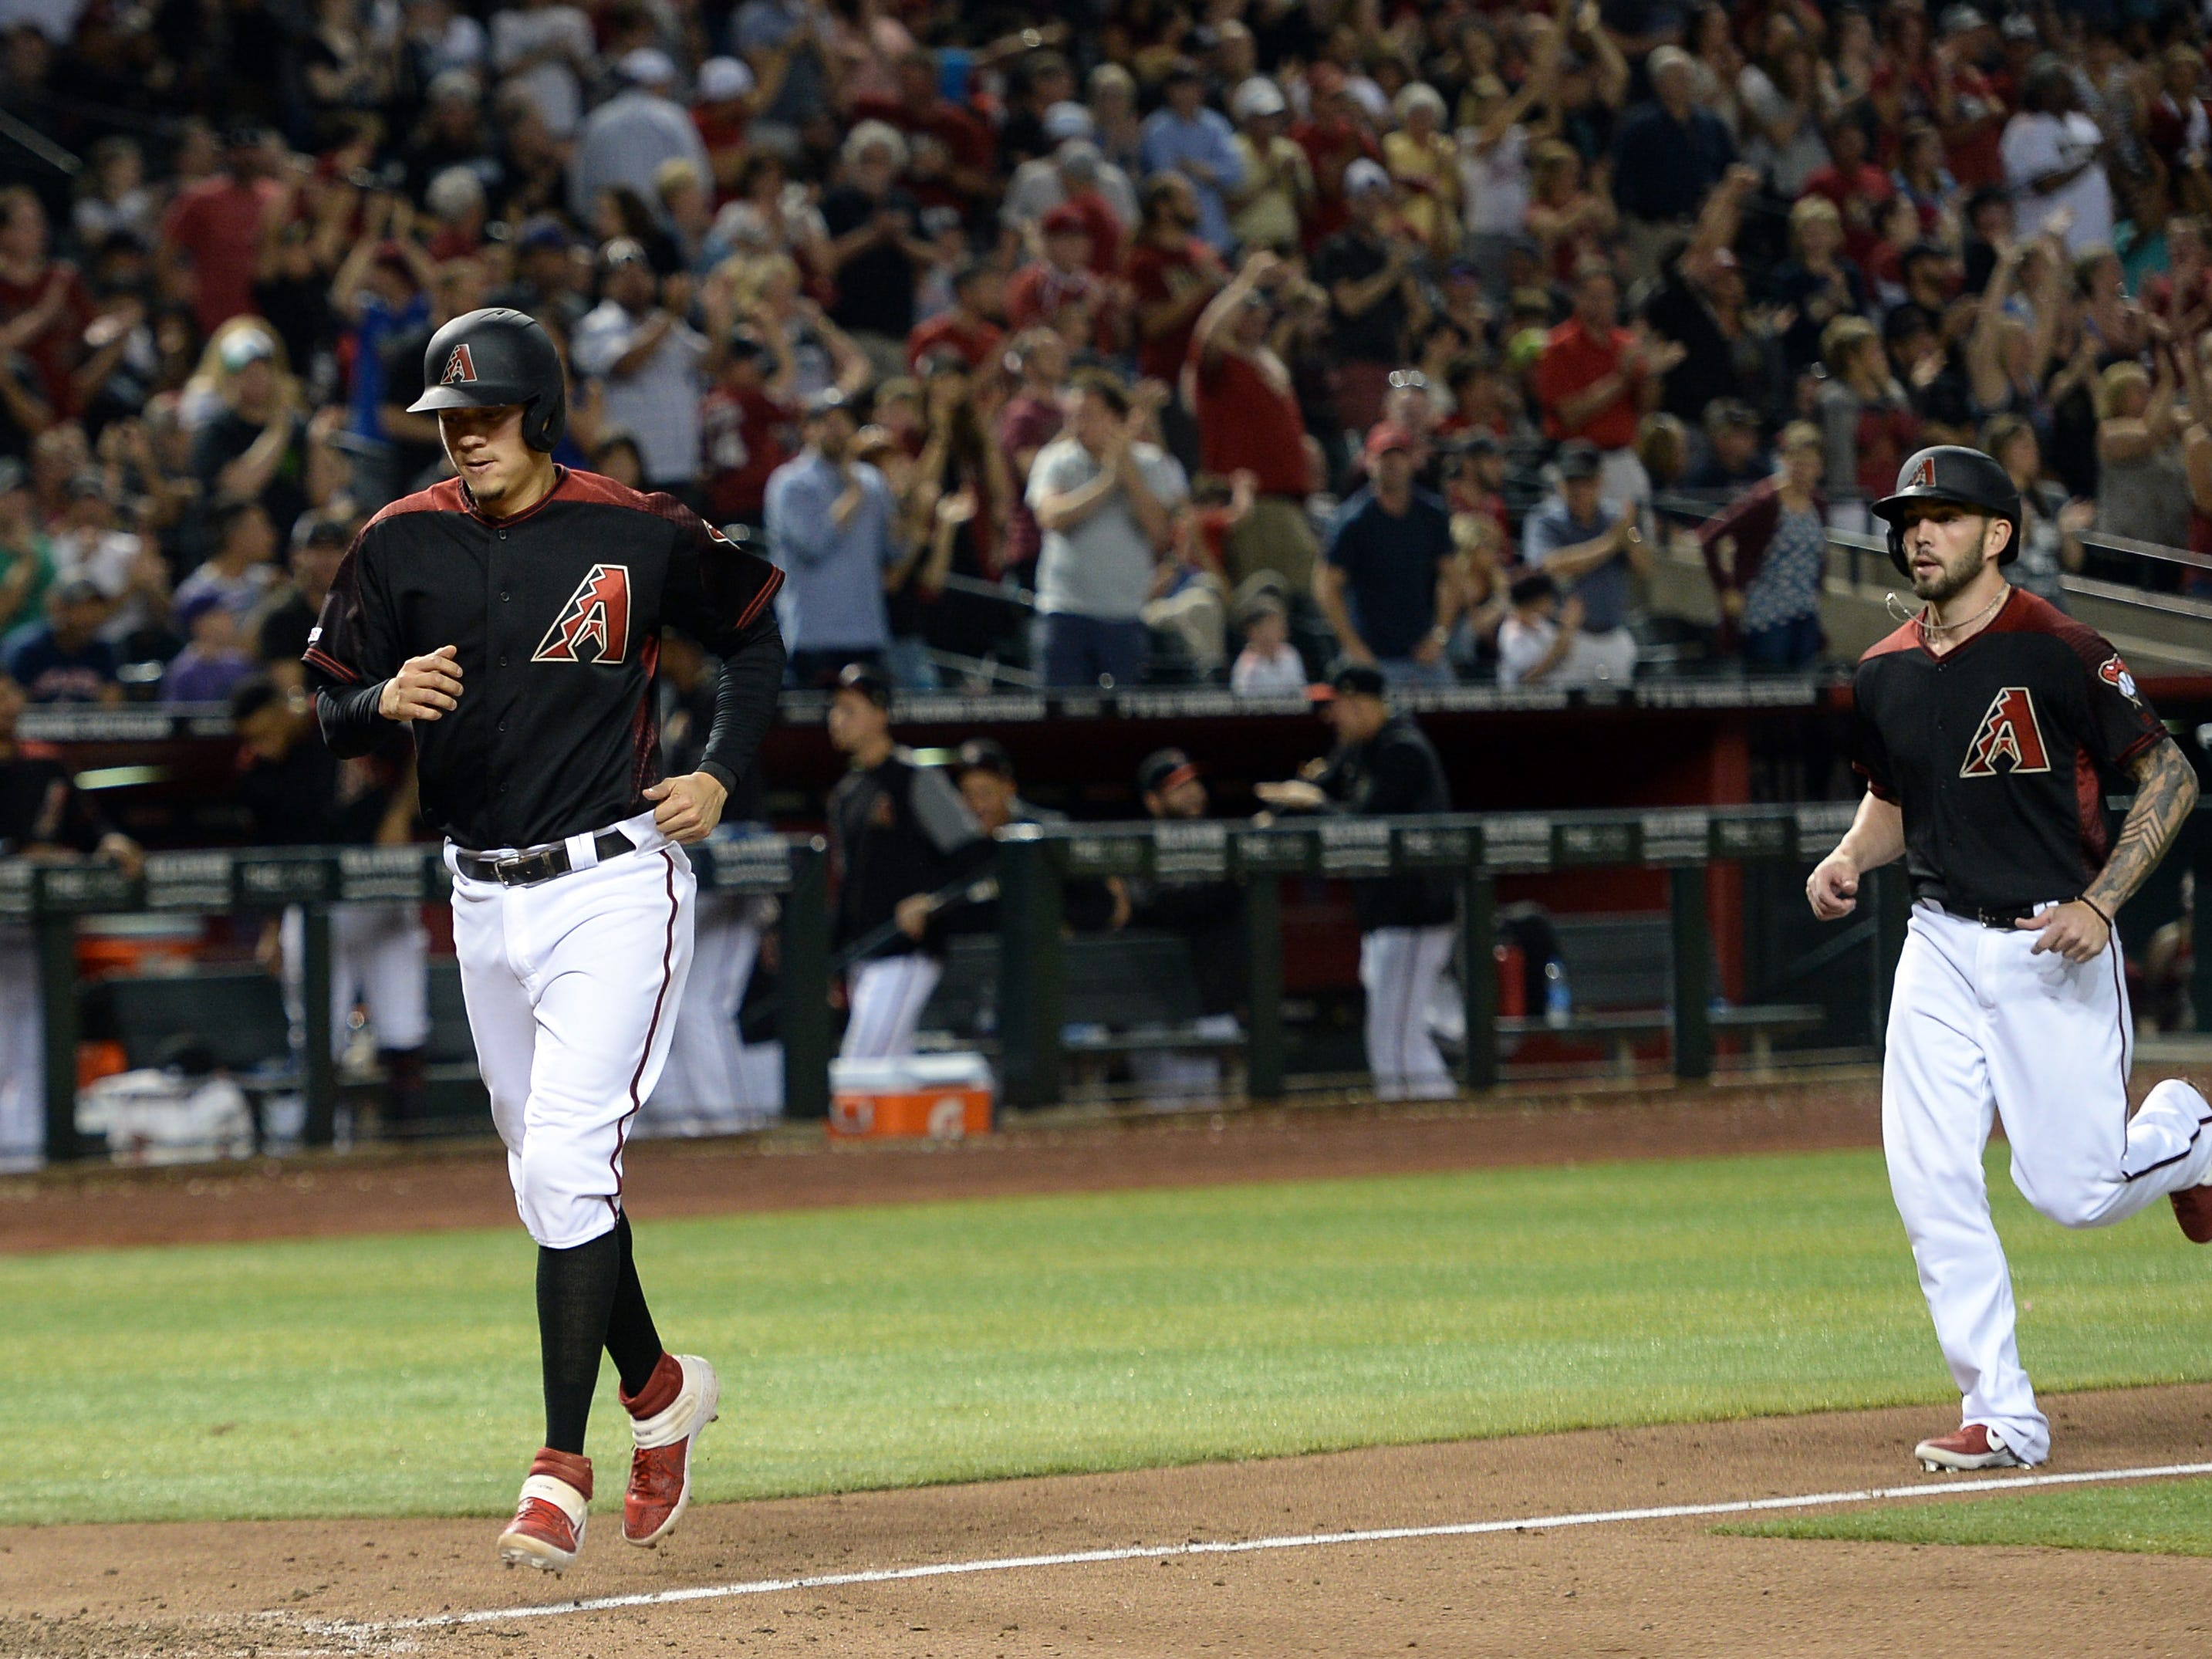 May 11, 2019; Phoenix, AZ, USA; Arizona Diamondbacks third baseman Wilmer Flores (41) and catcher Blake Swihart (19) approach home plate after a two run home run by Swihart against the Atlanta Braves during the eighth inning at Chase Field.